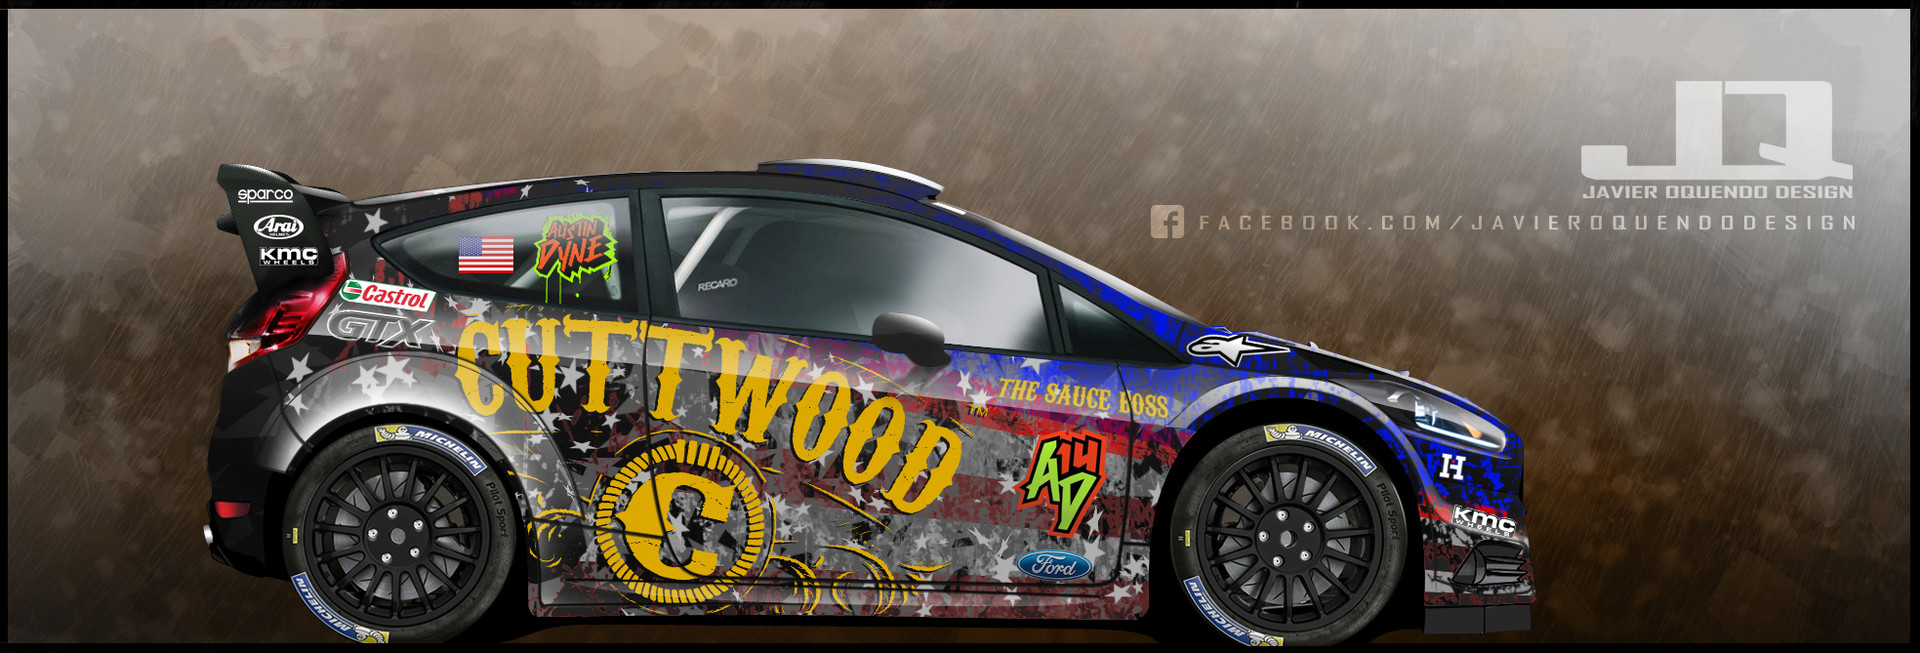 Austin Dyne - Cuttwood Racing